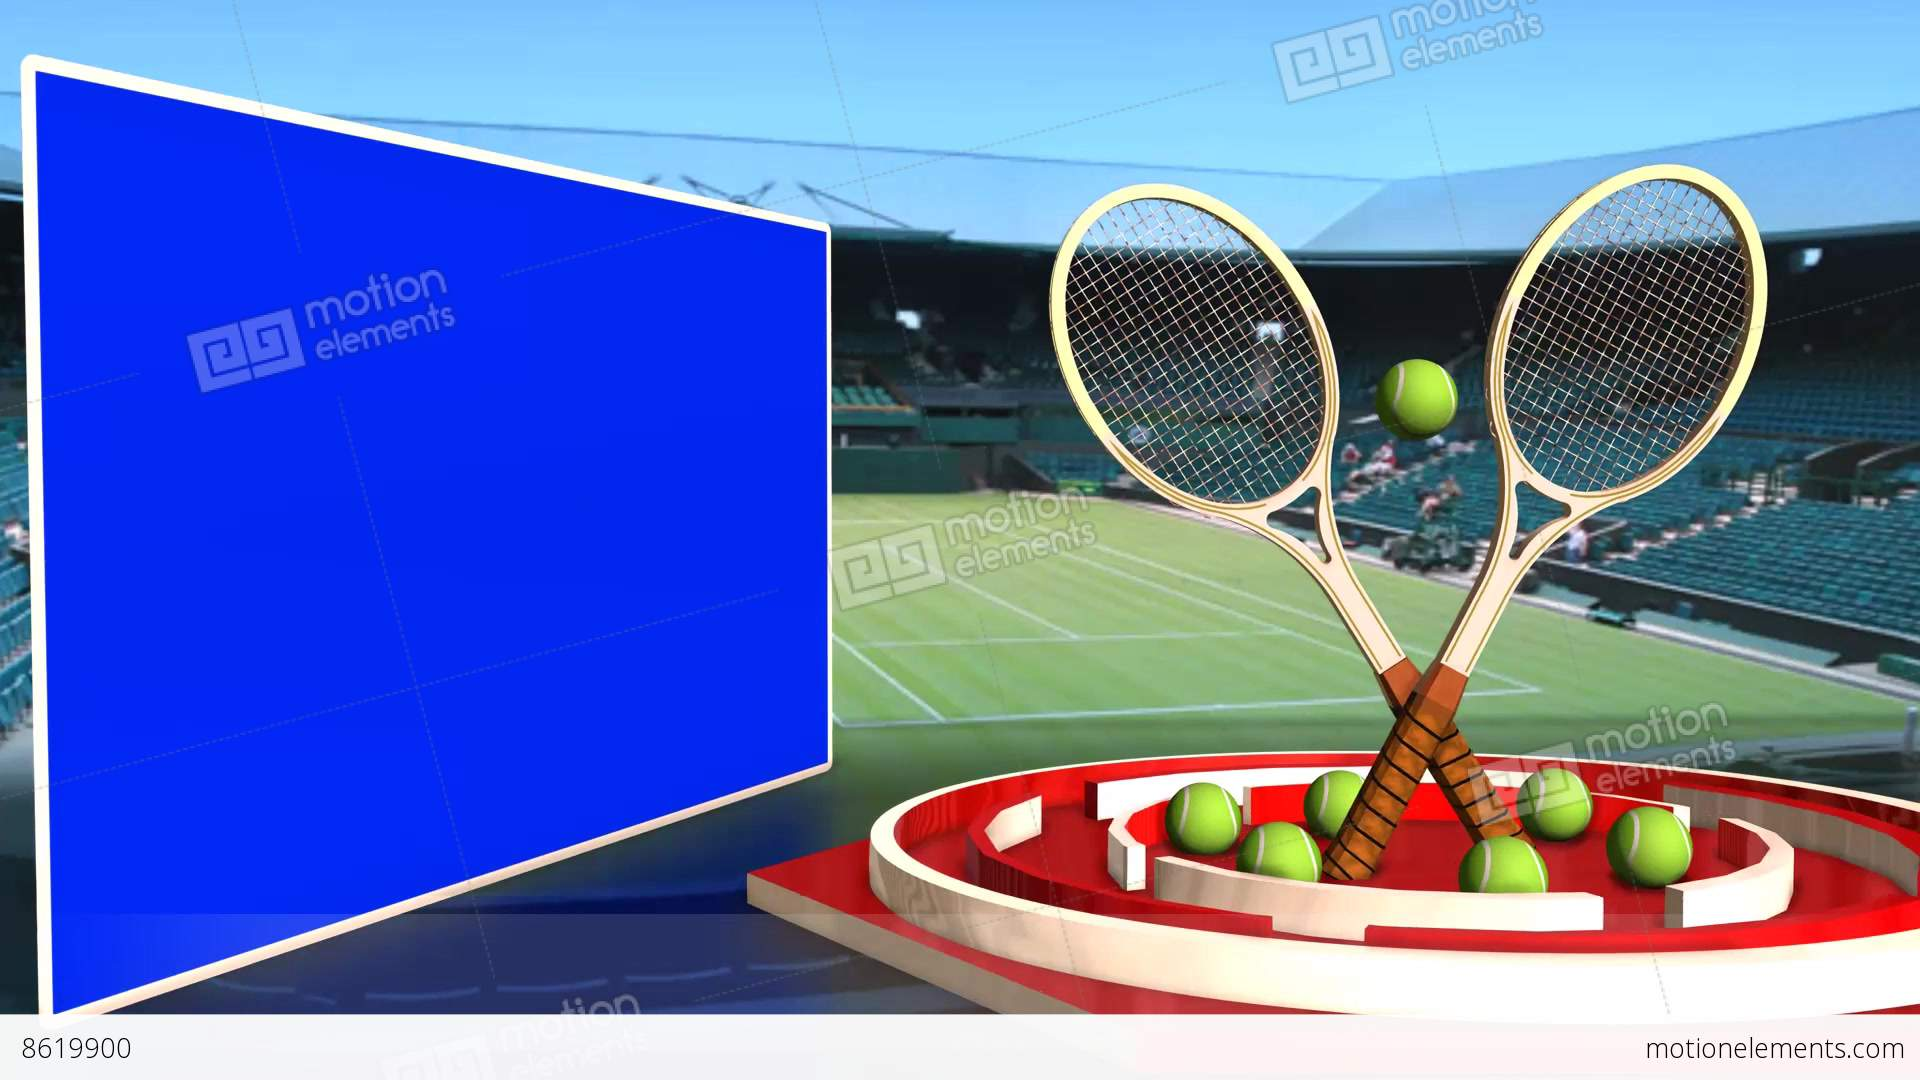 Tennis News Update Television Broadcast Sports Program White Line